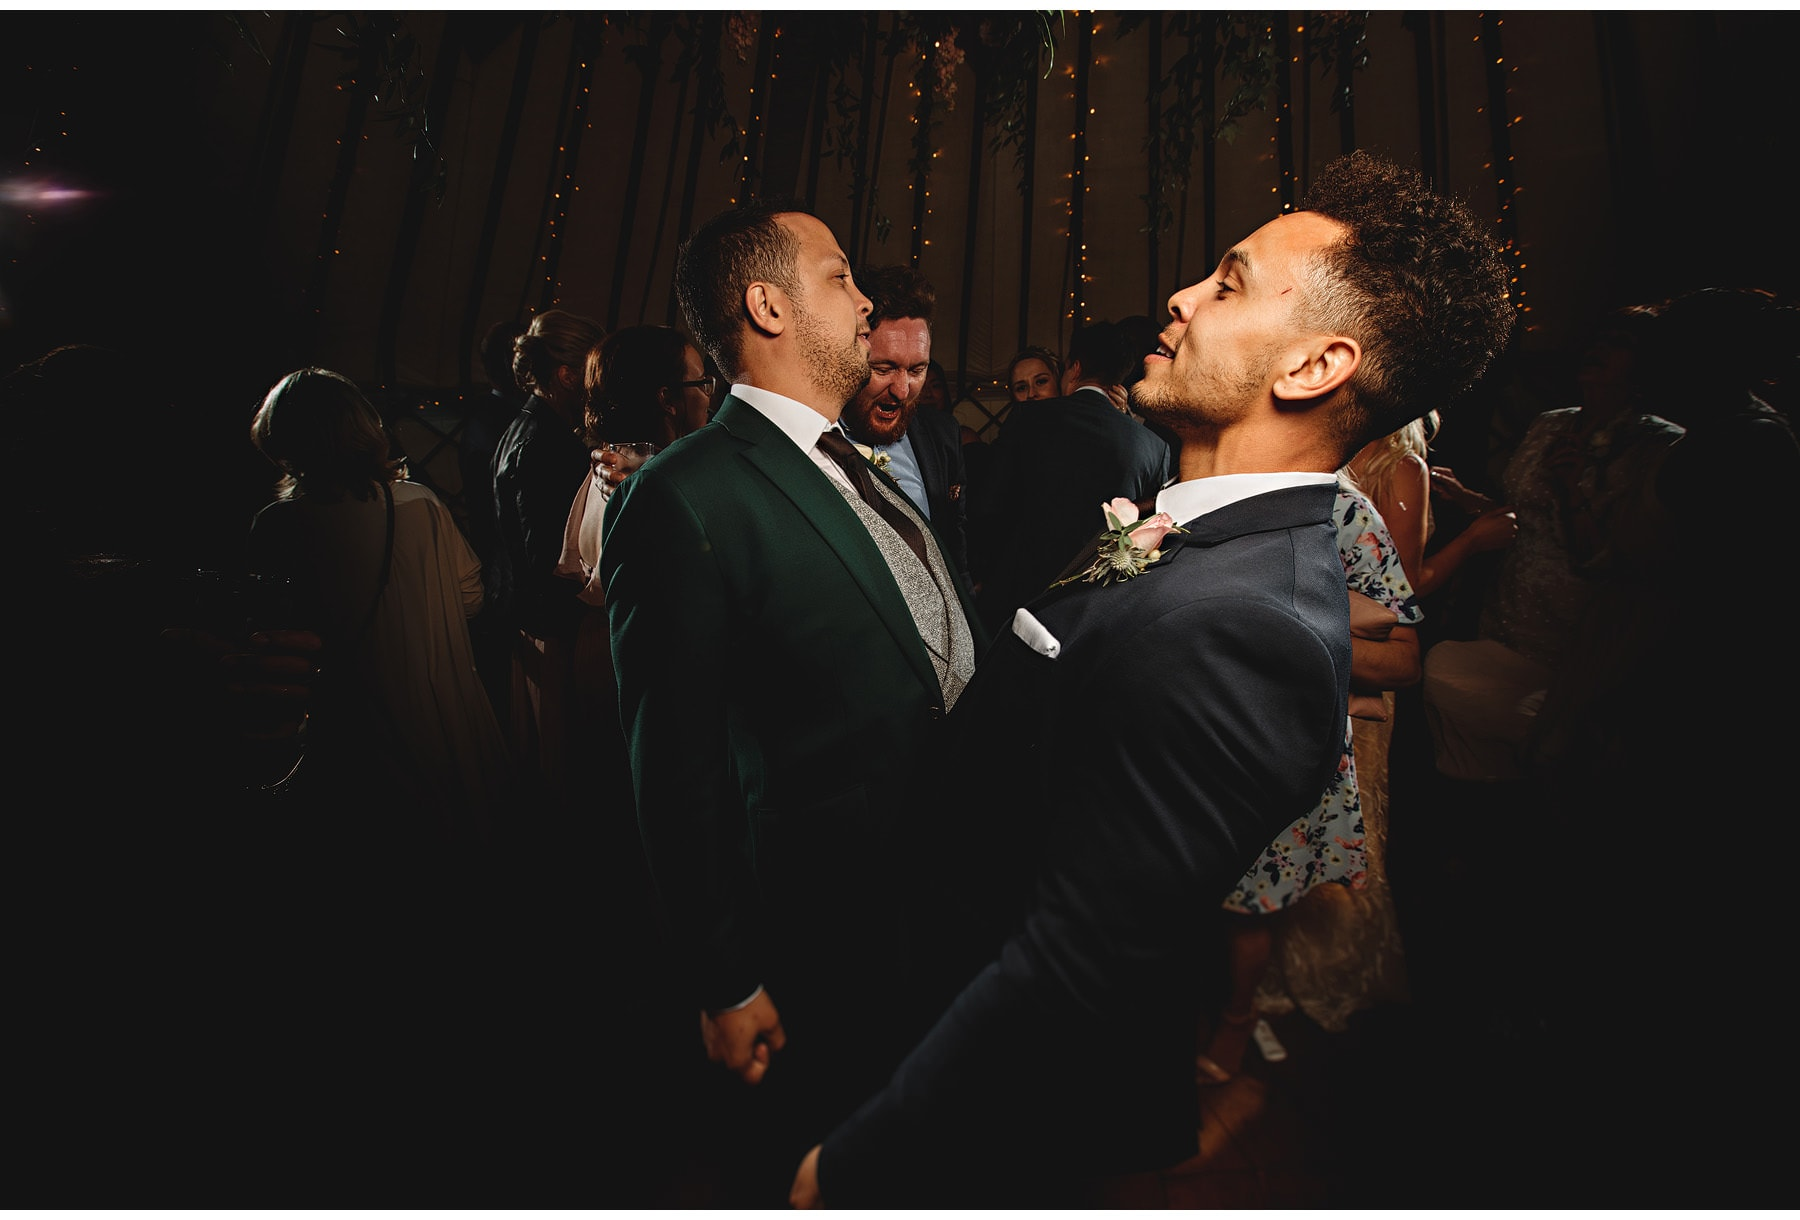 the groom and his brother dancing